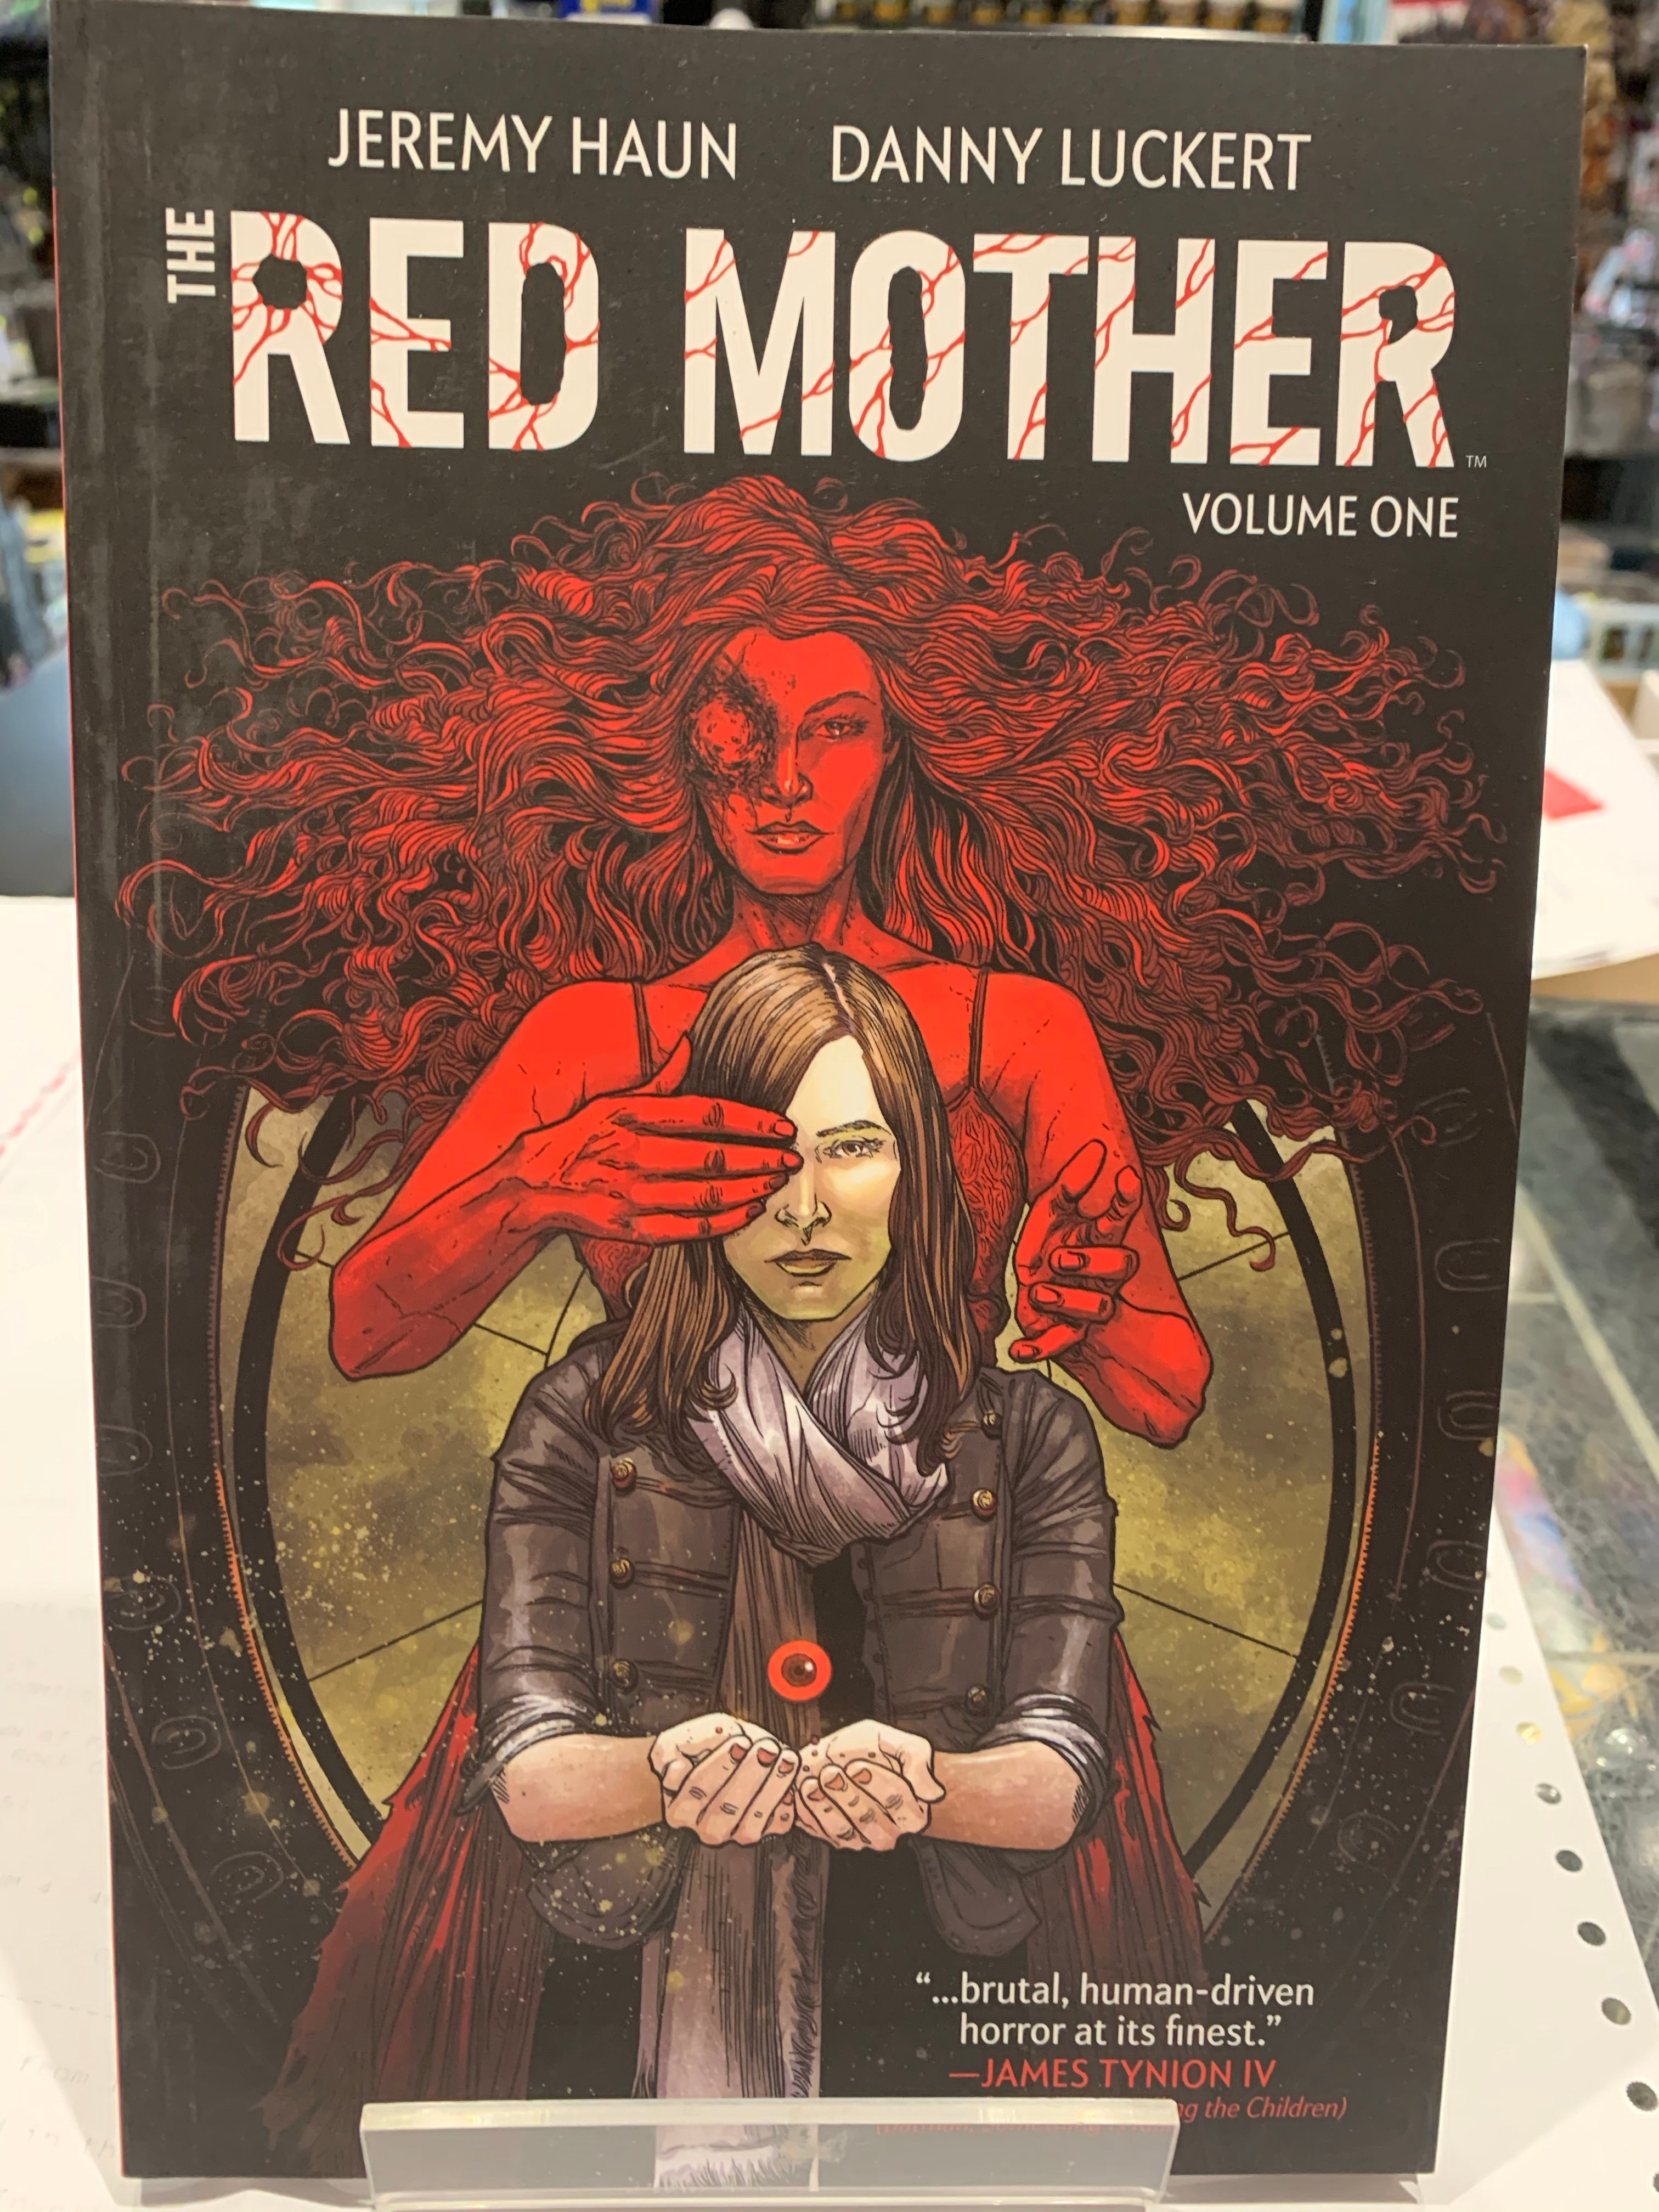 Boom Comics - The Red Mother Vol 1 | Millennium Comics